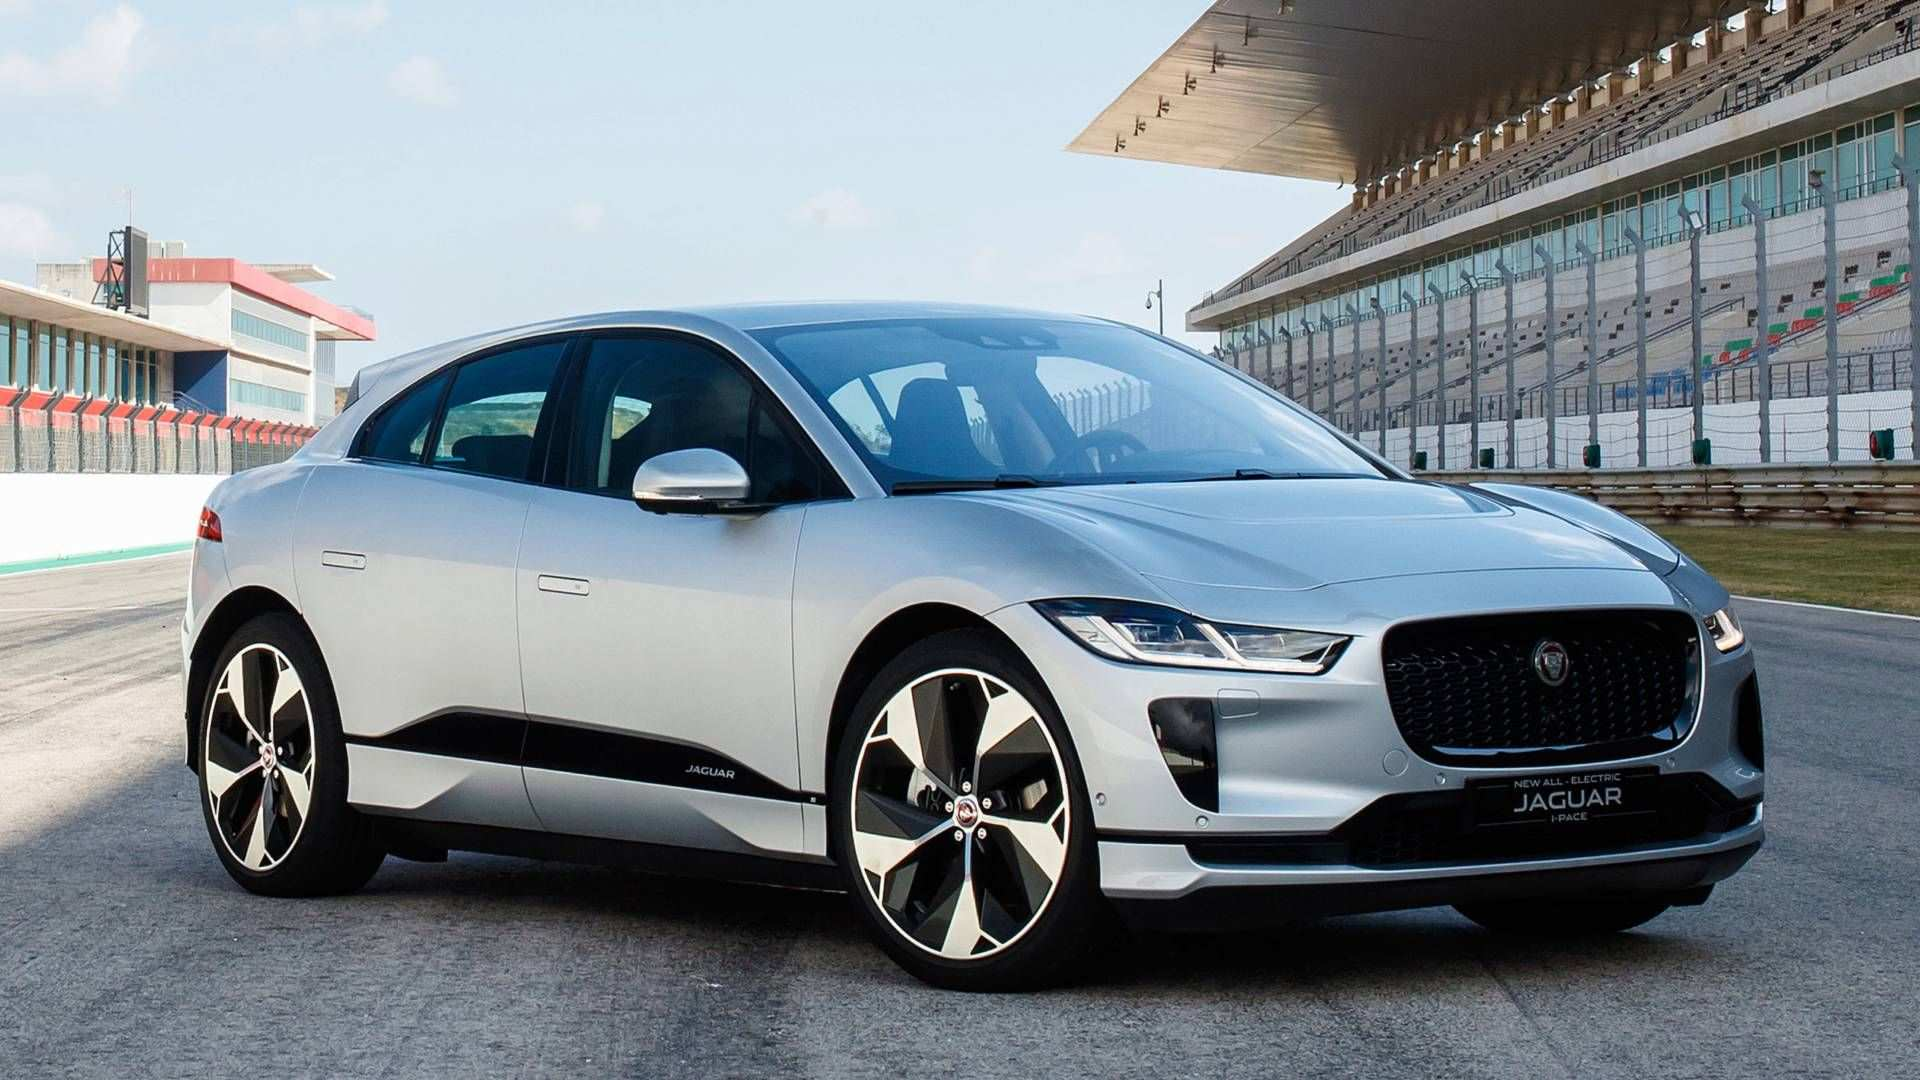 92 The 2019 Jaguar I Pace Release Date Redesign for 2019 Jaguar I Pace Release Date